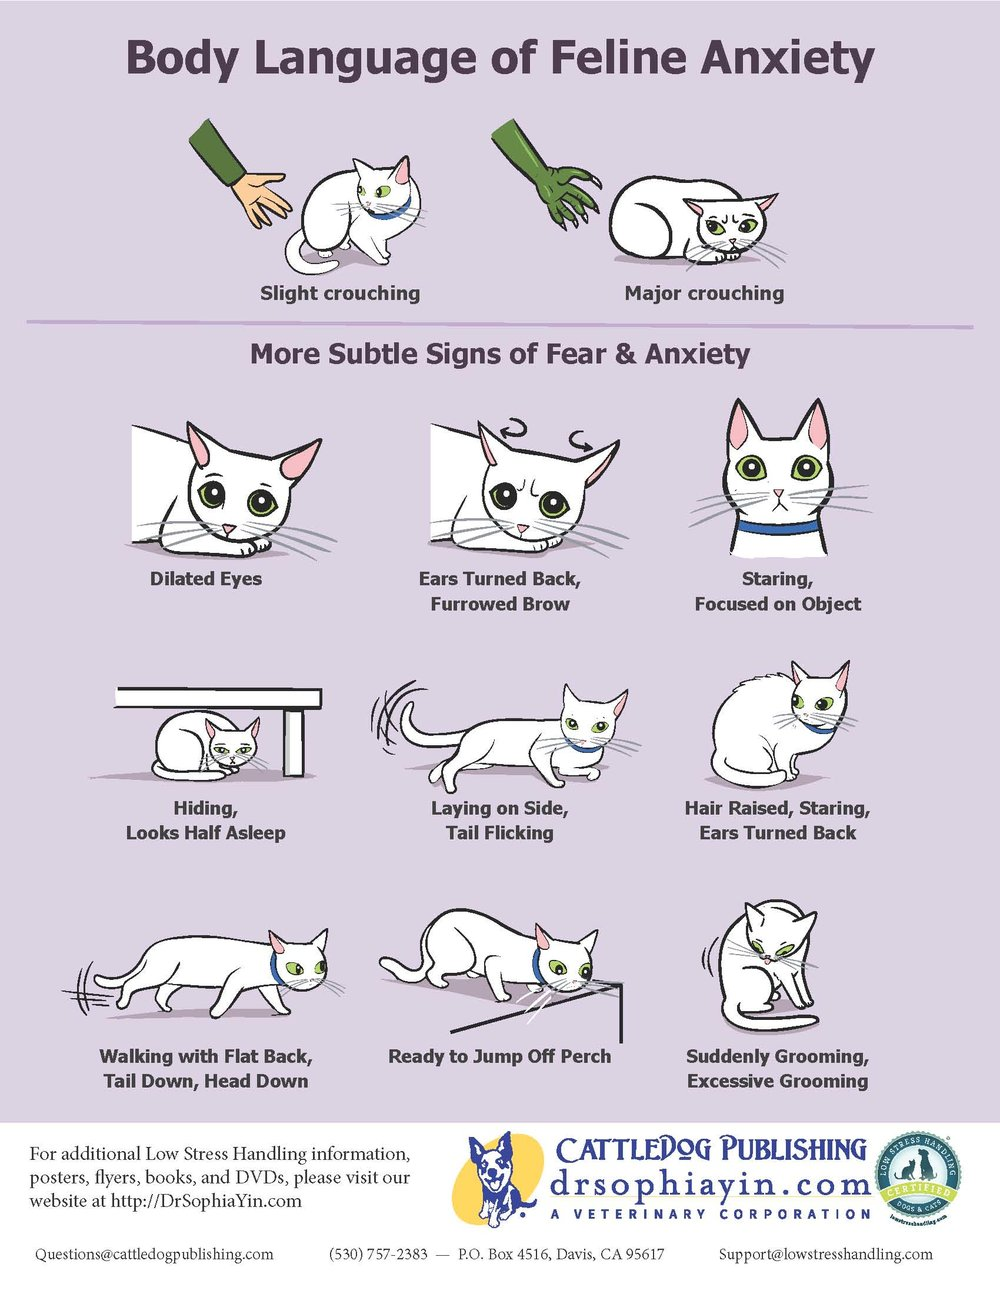 Body-Language-of-Feline-Anxiety-Poster.jpg